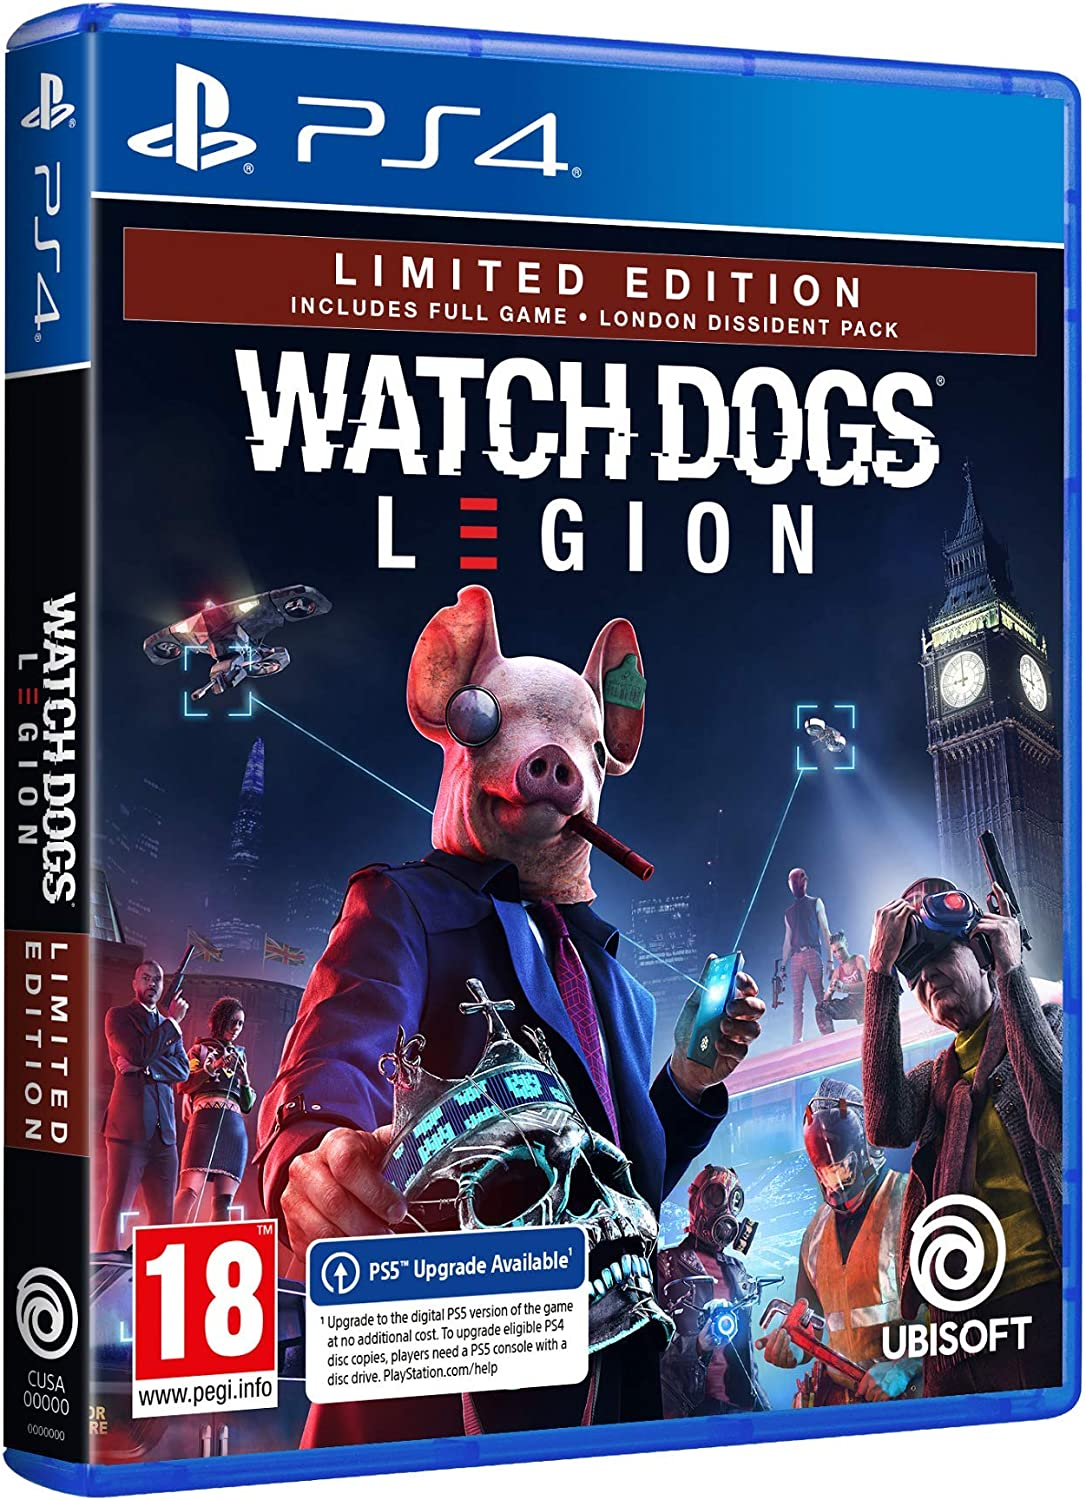 Watch Dogs Legion - Limited Edition (Exclusiva Amazon): Amazon.es: Videojuegos